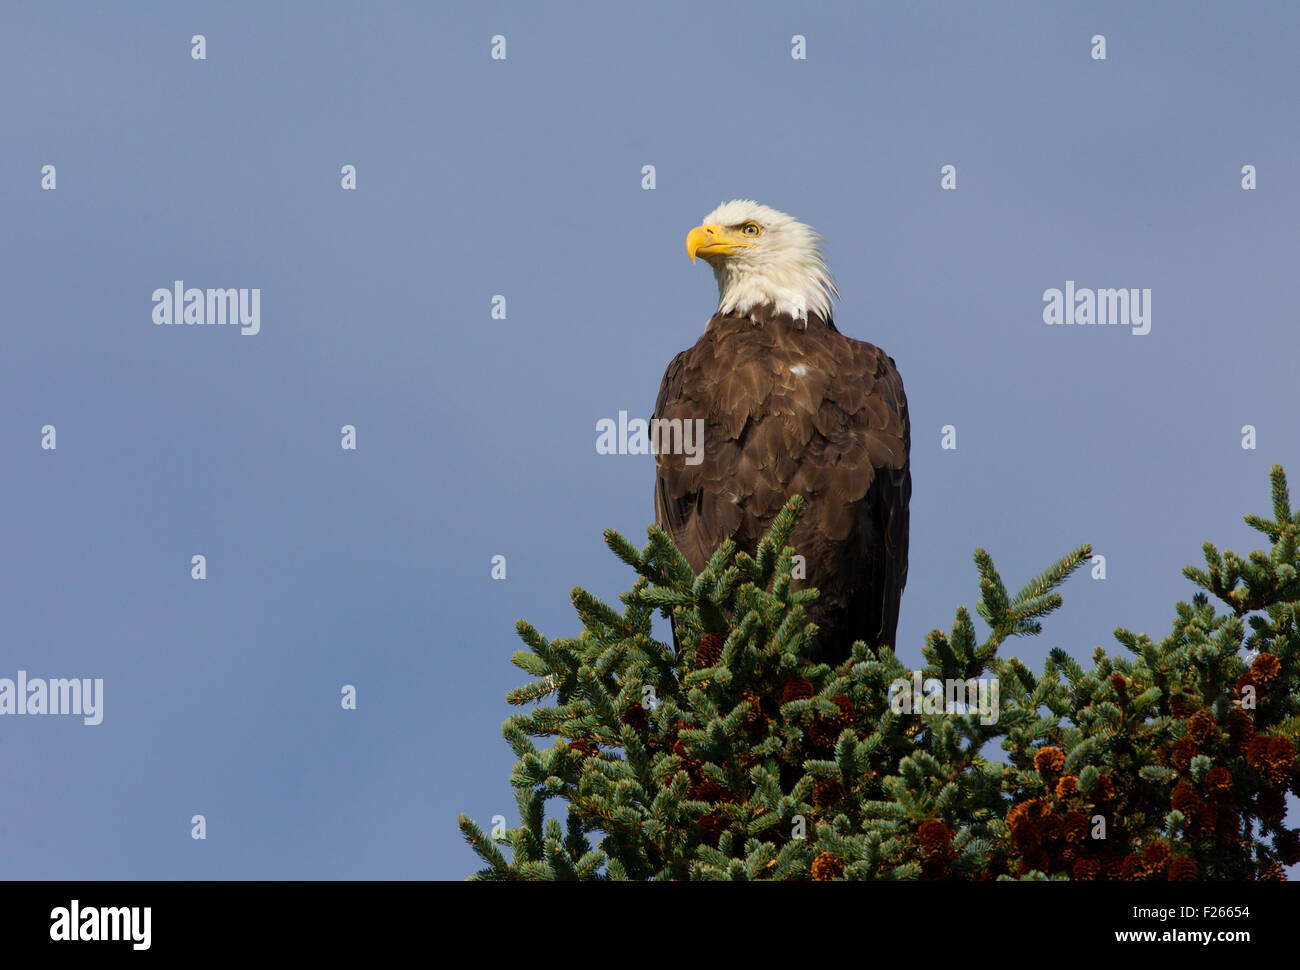 Bald Eagle Perched in Pine Tree - Stock Image